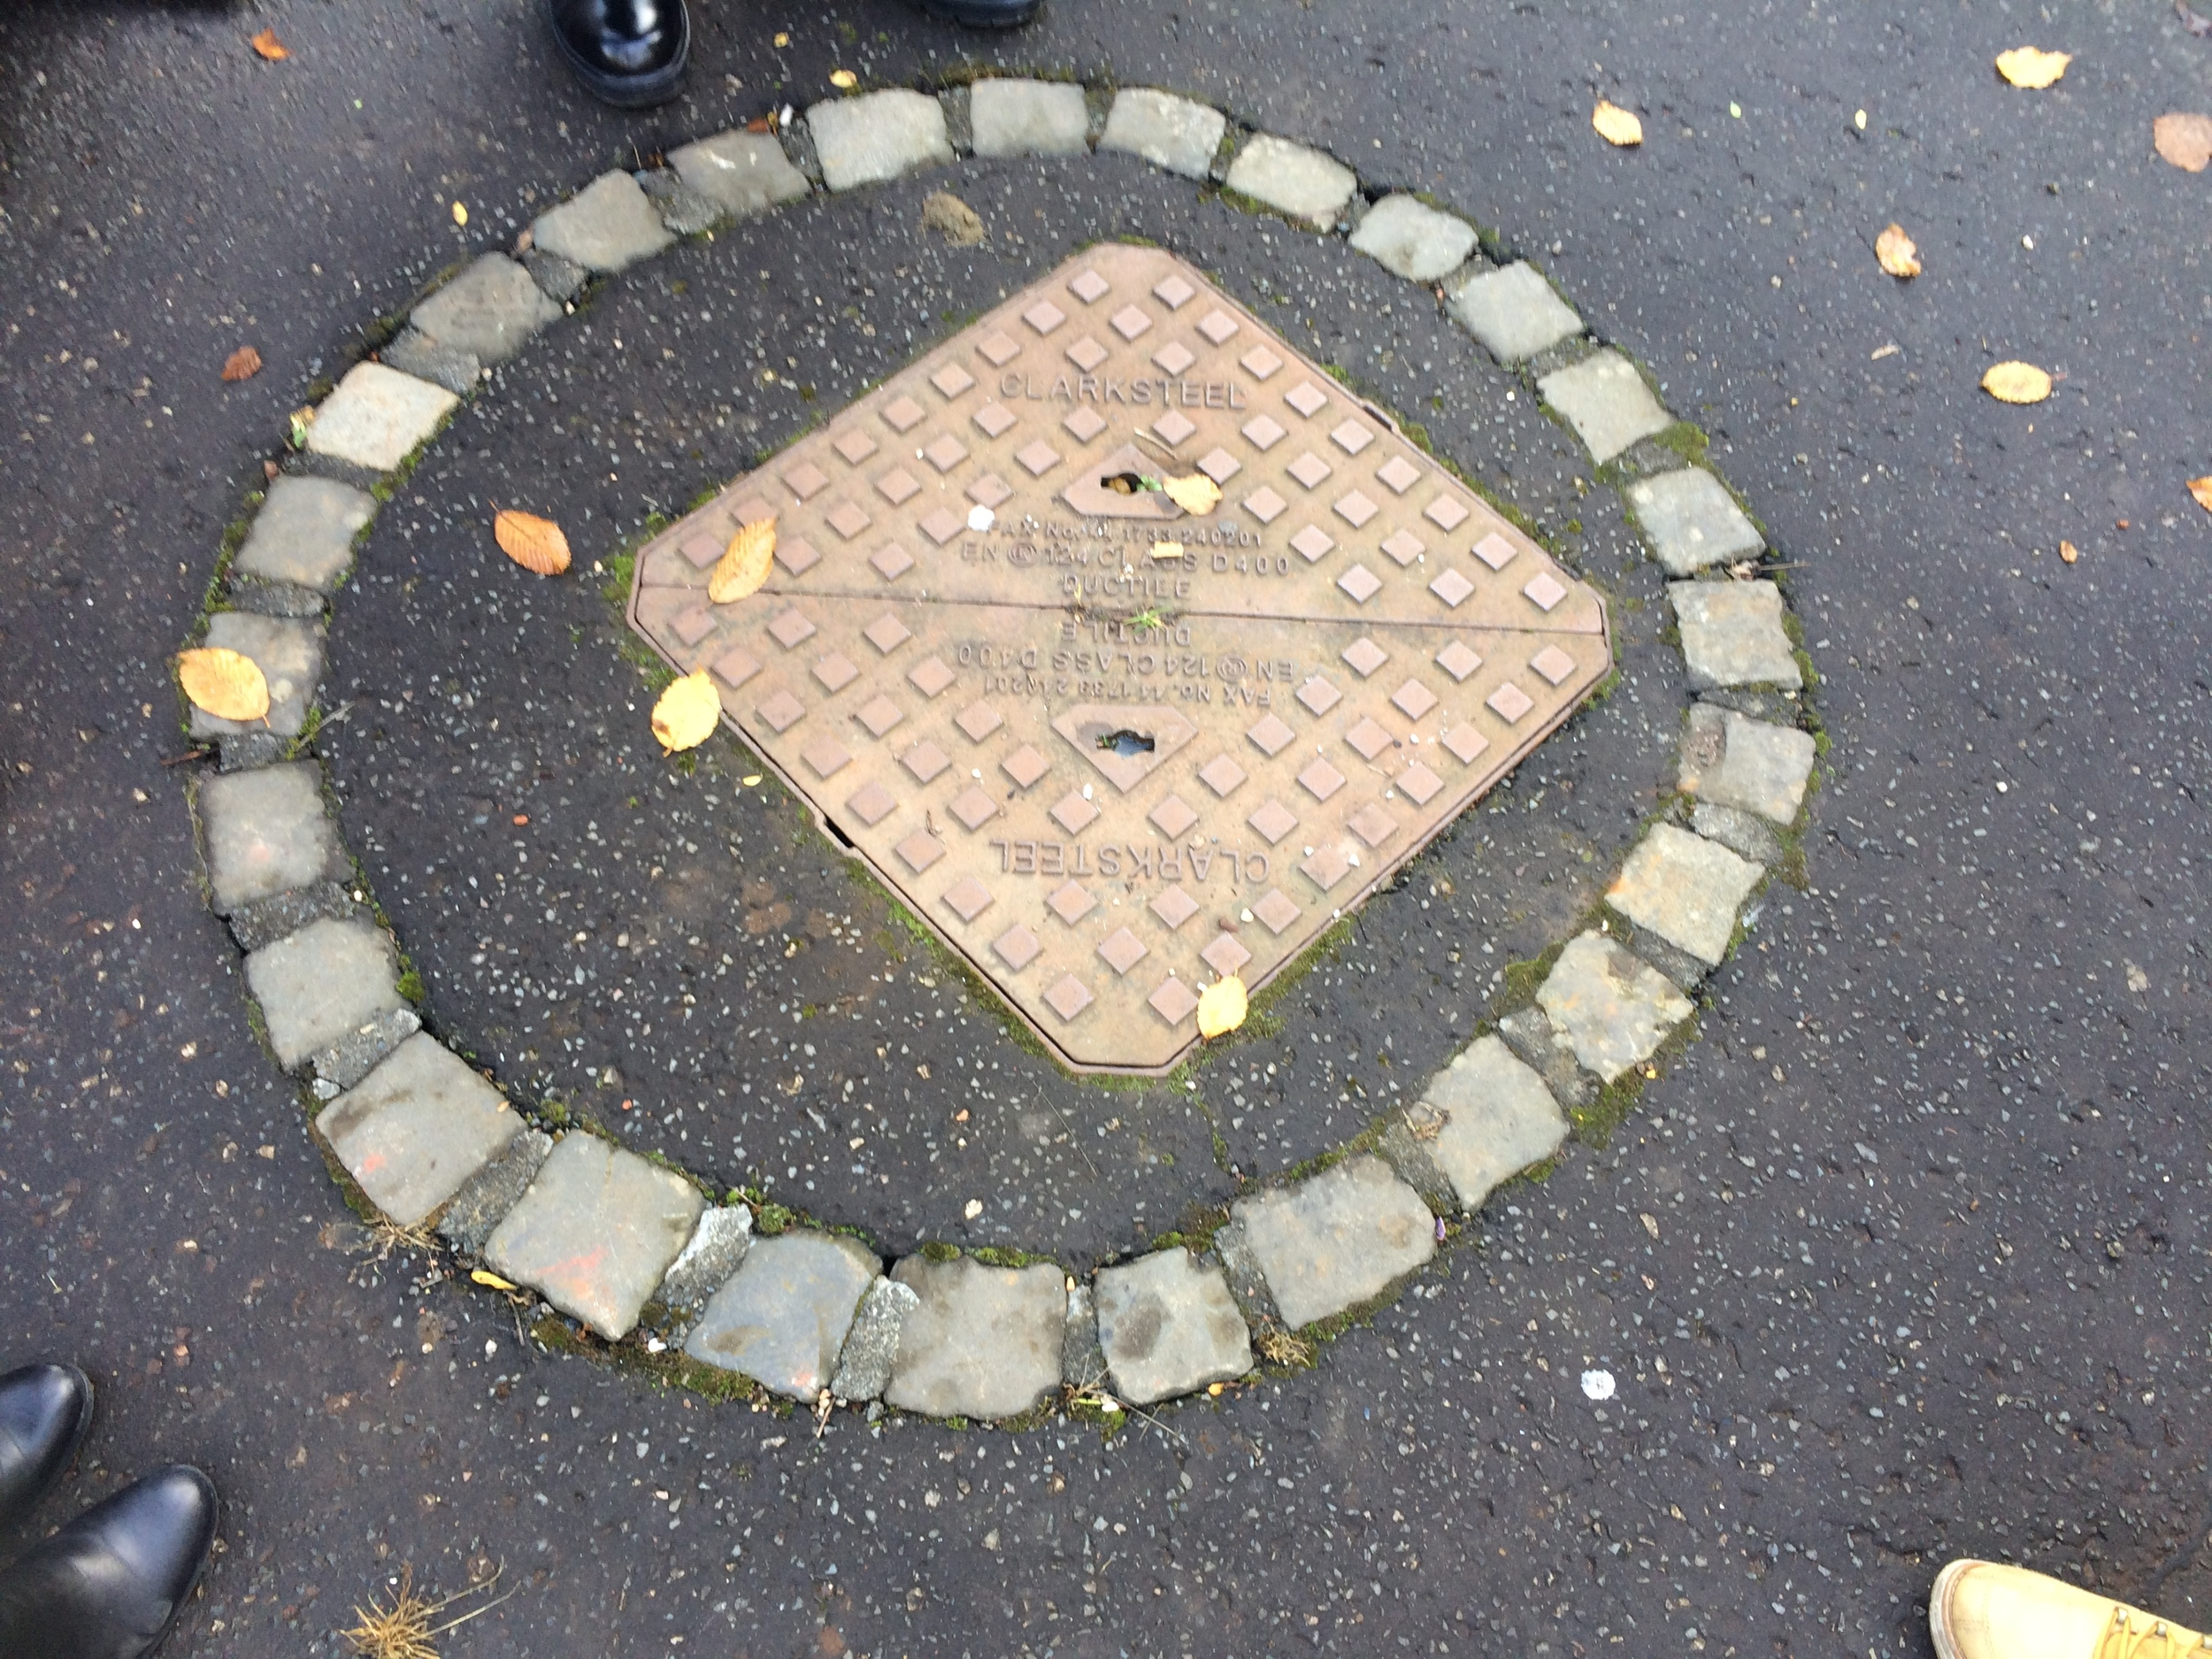 A manhole cover is the only marker for the location of the production well